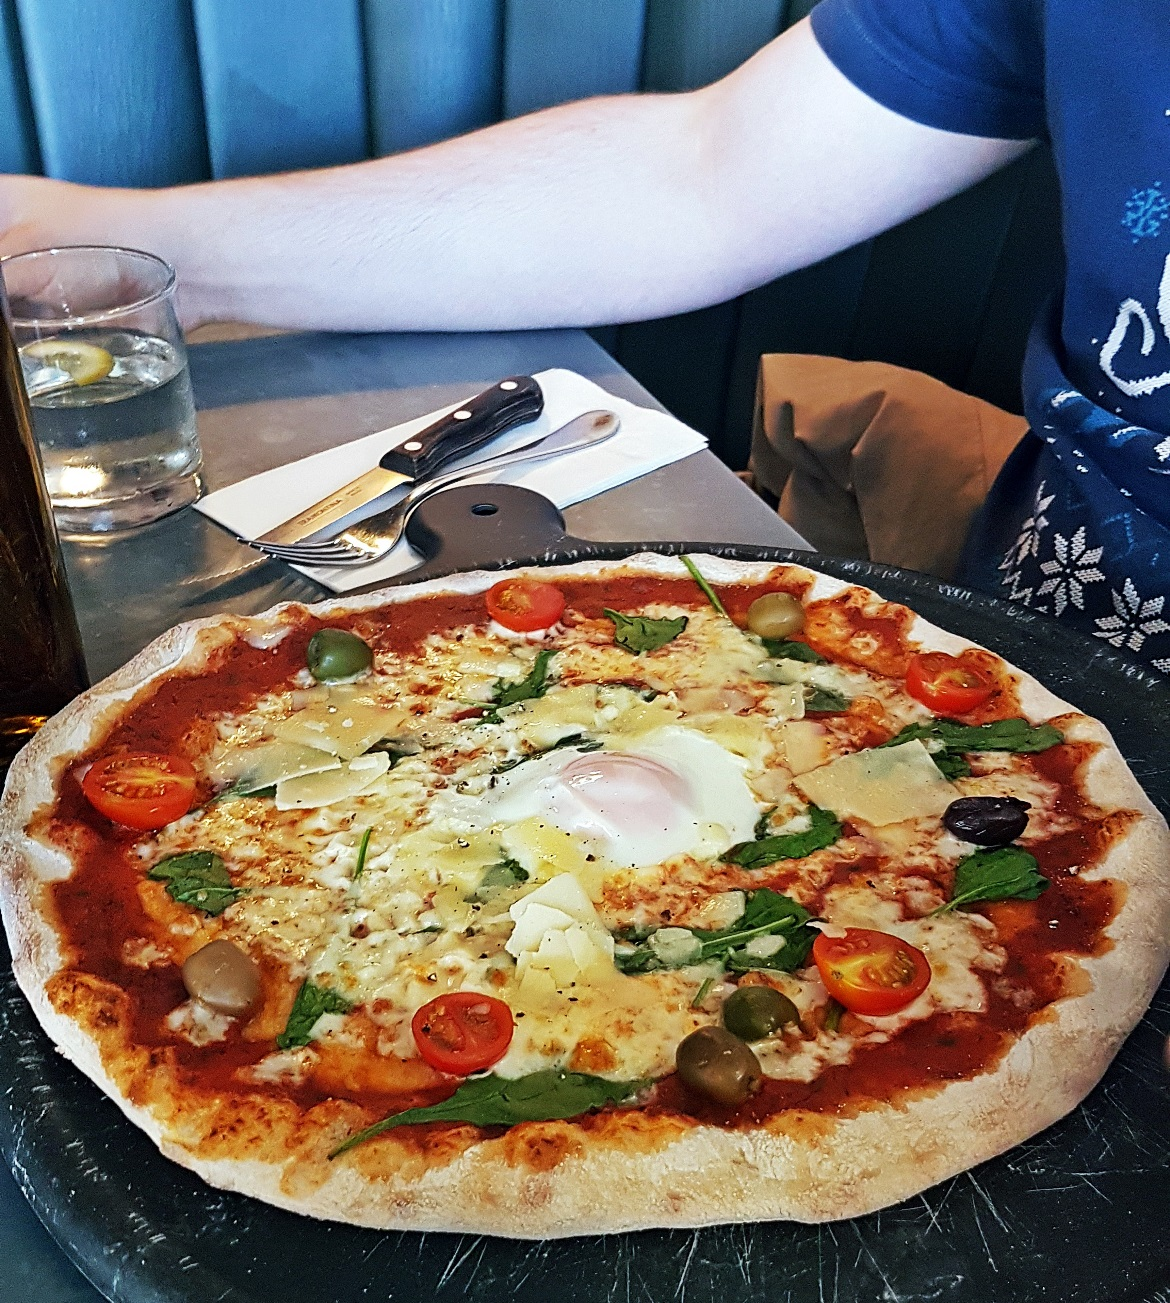 A massive pizza at Wildwood in Ilkley - September Monthly Recap by BeckyBecky Blogs